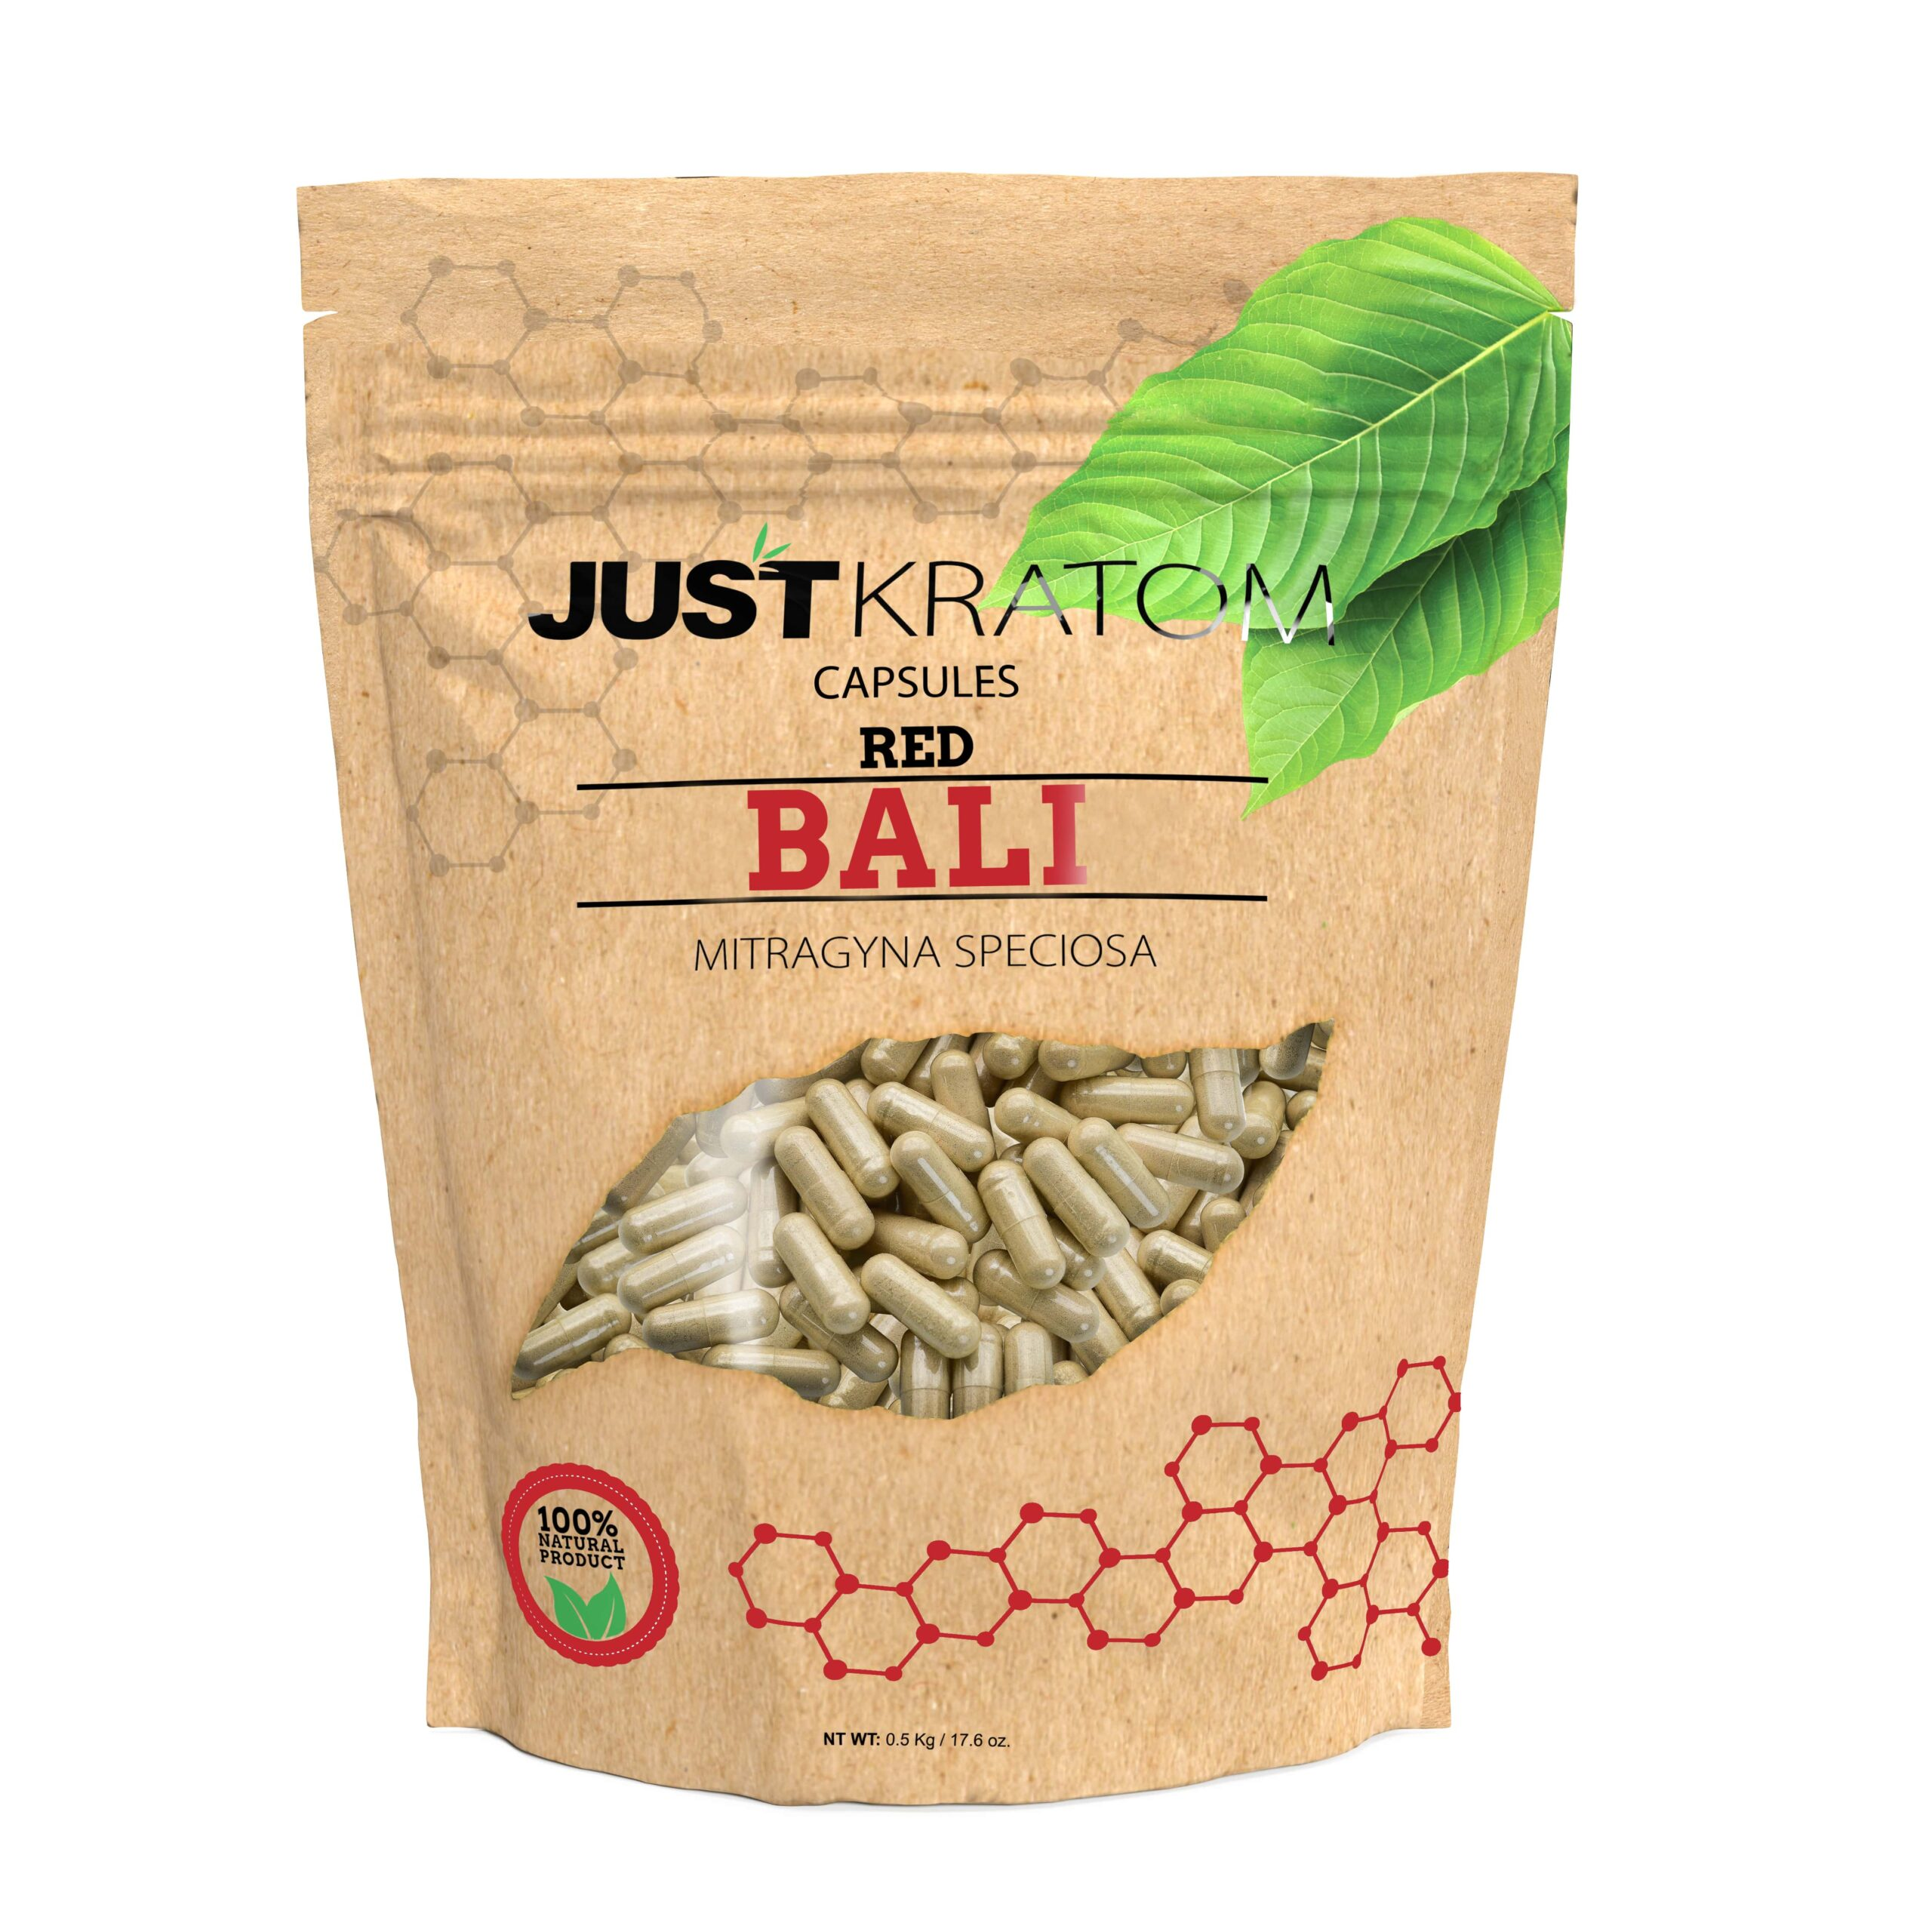 Where To Buy Kratom With Credit Card